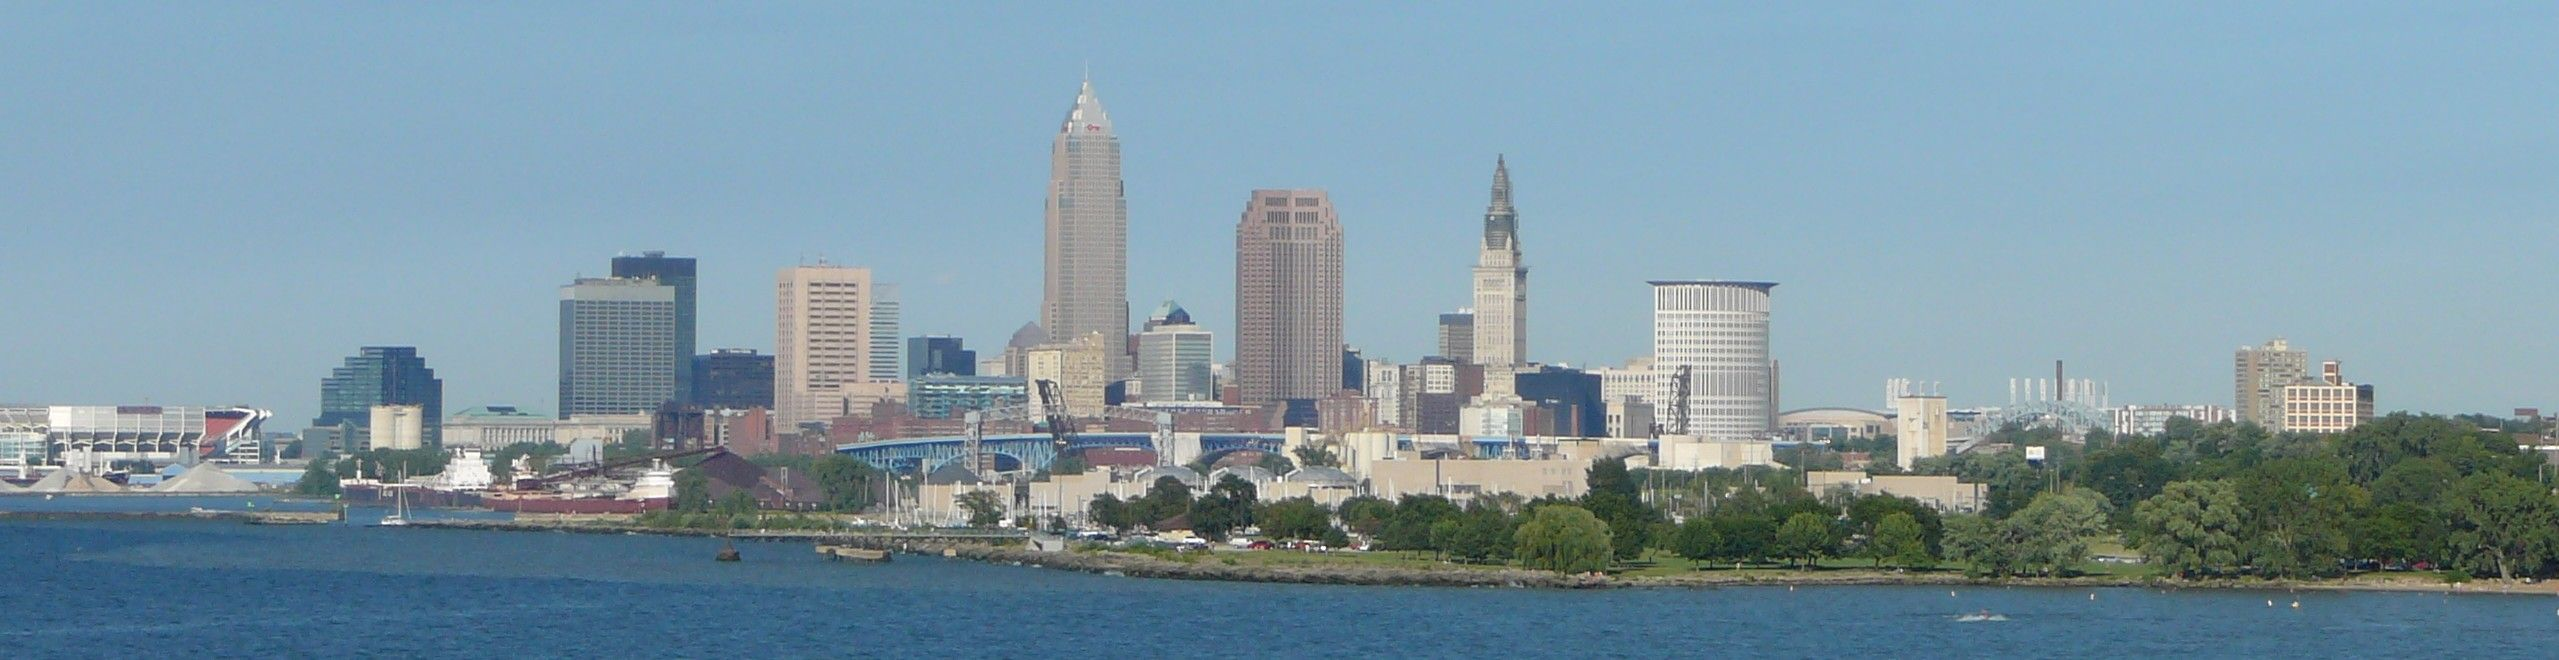 Jobs Hiring In Cleveland Oh With Images Cleveland Skyline